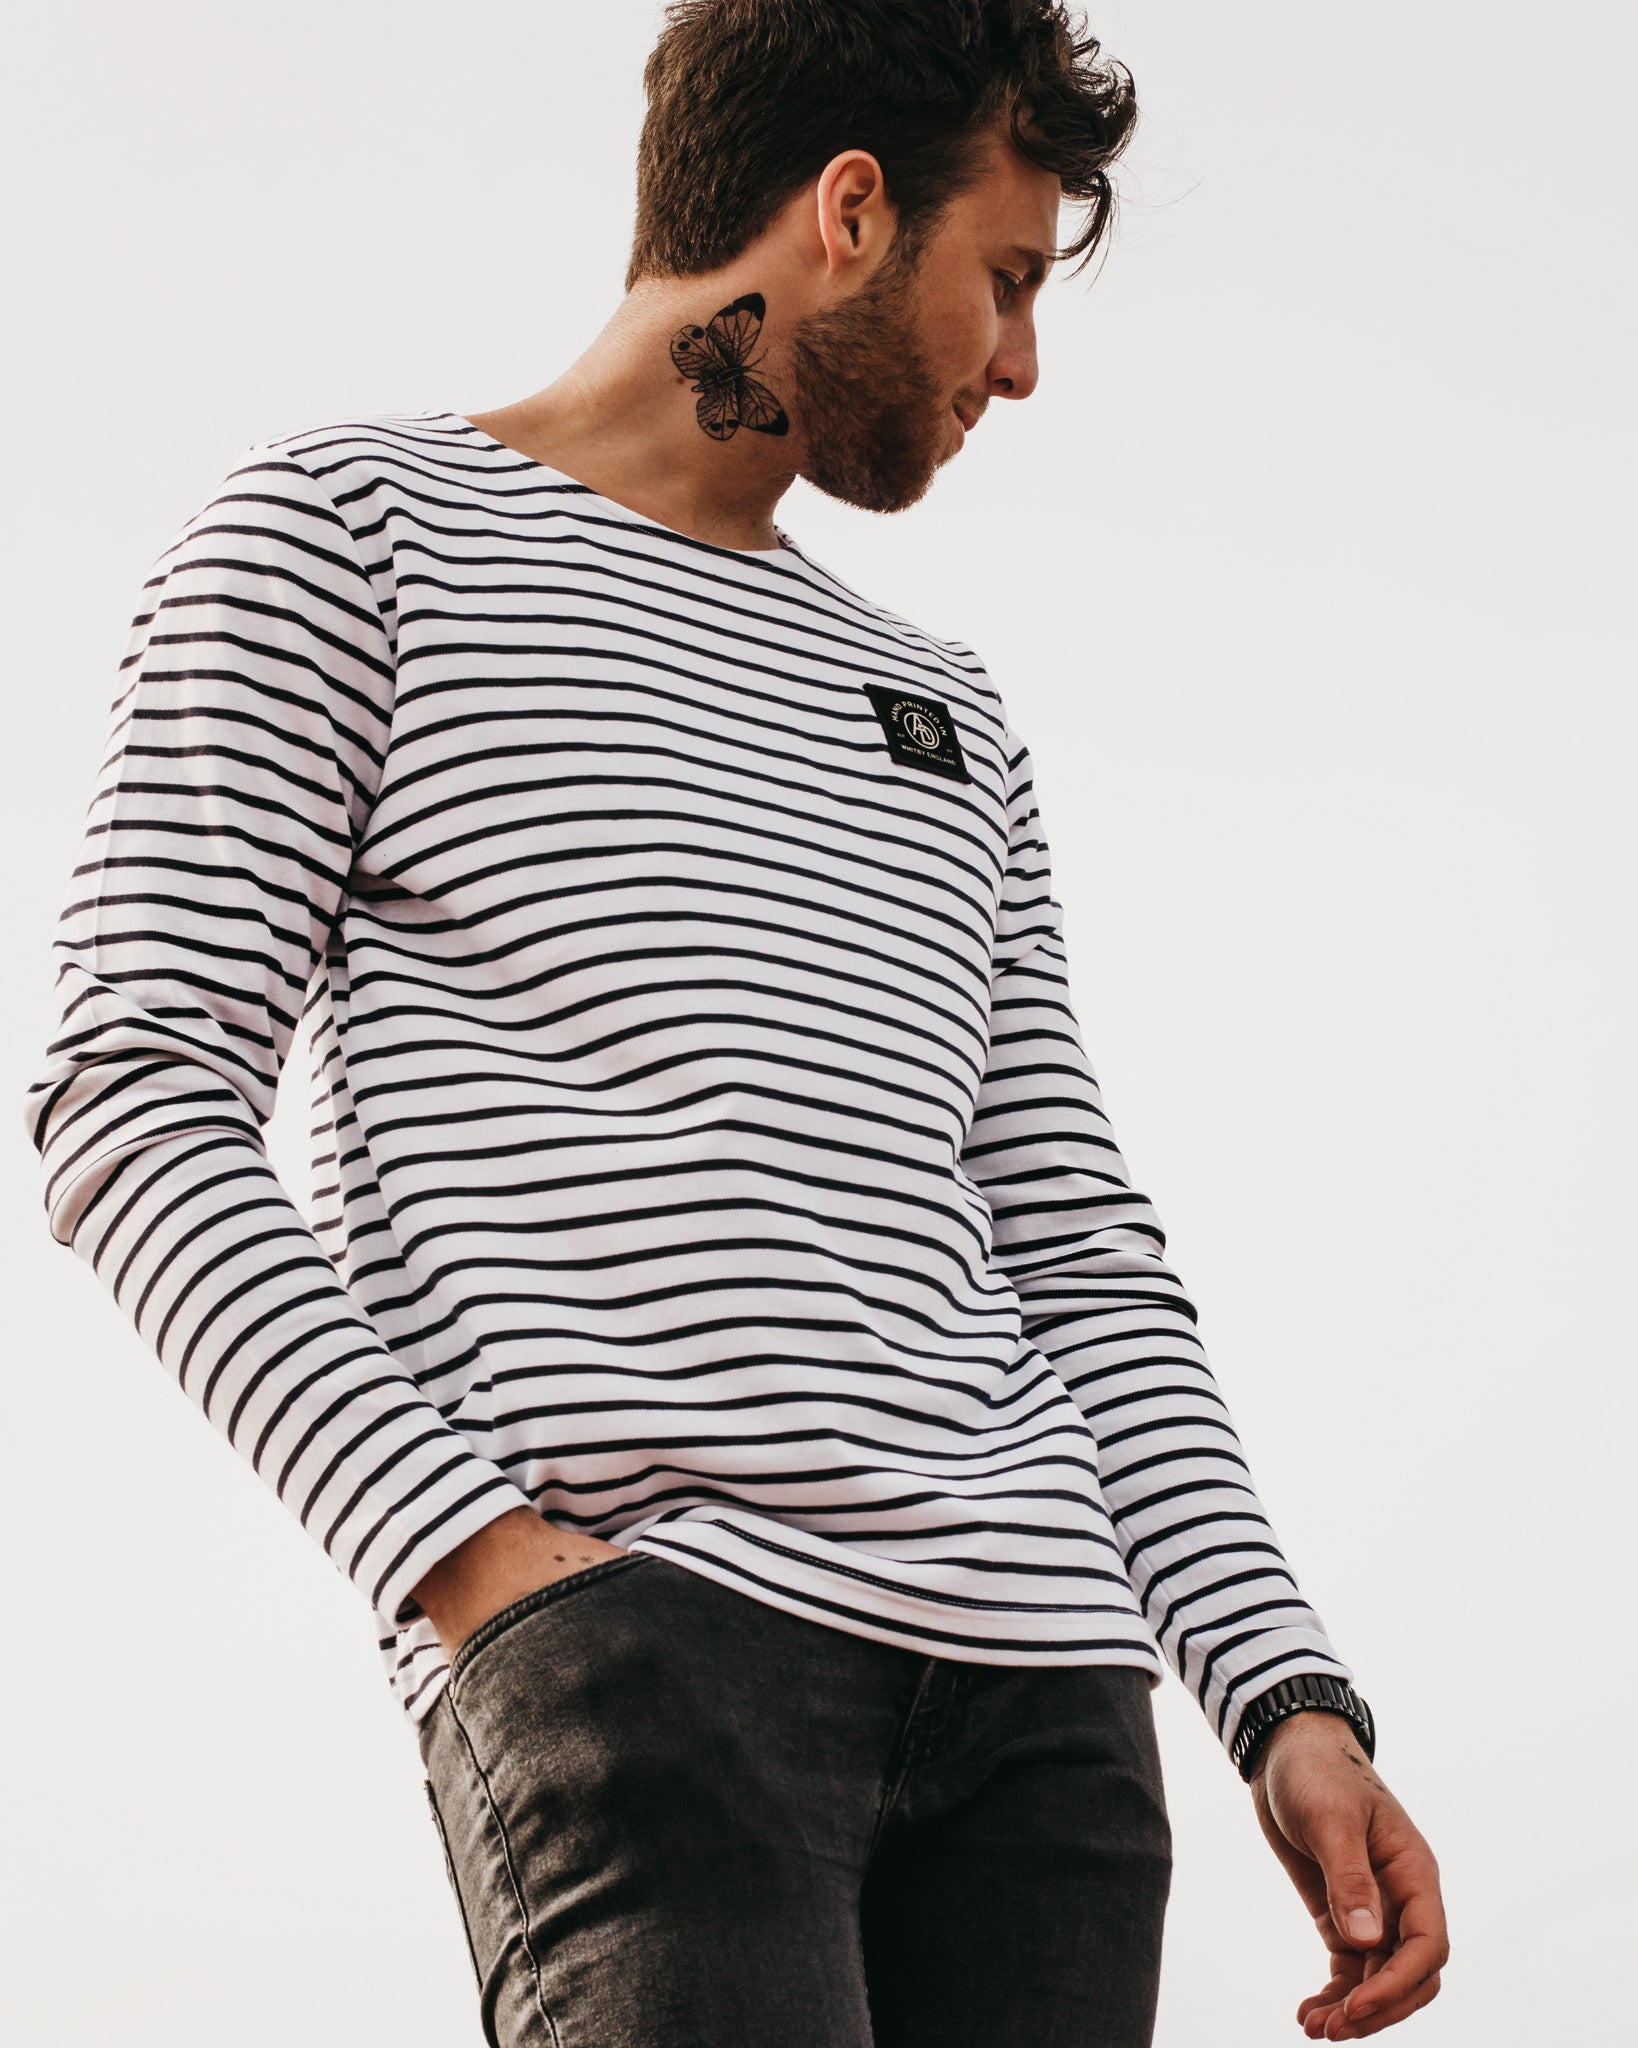 Insignia  Striped Breton Long Sleeve Top by ART DISCO 797d37bbe